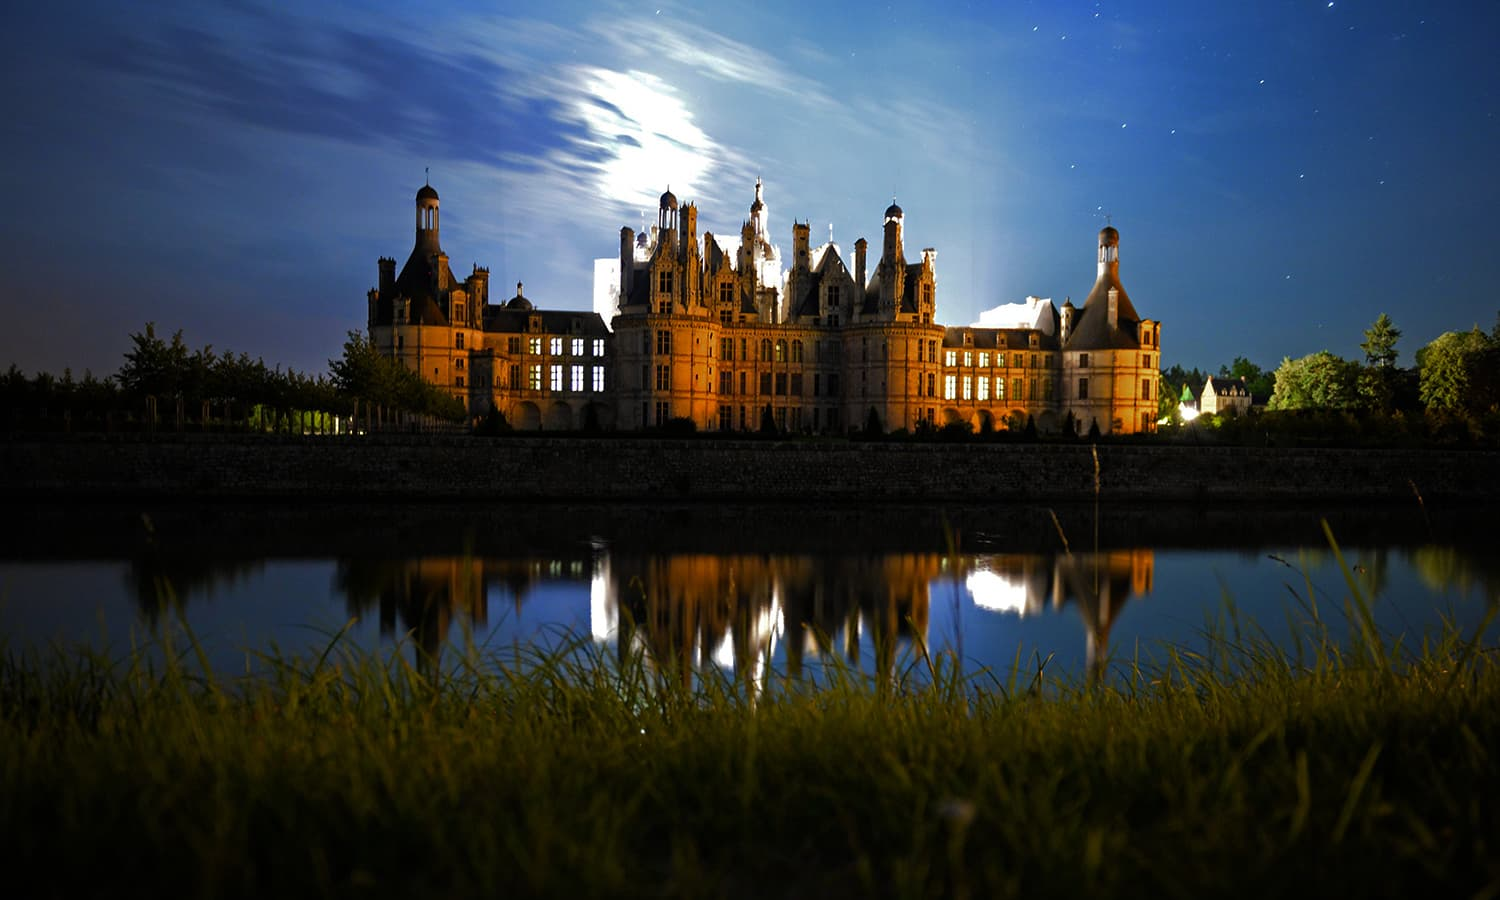 """A """"blood moon"""" eclipse is seen over the roof of the Chambord Castle in Chambord, France. — AFP"""